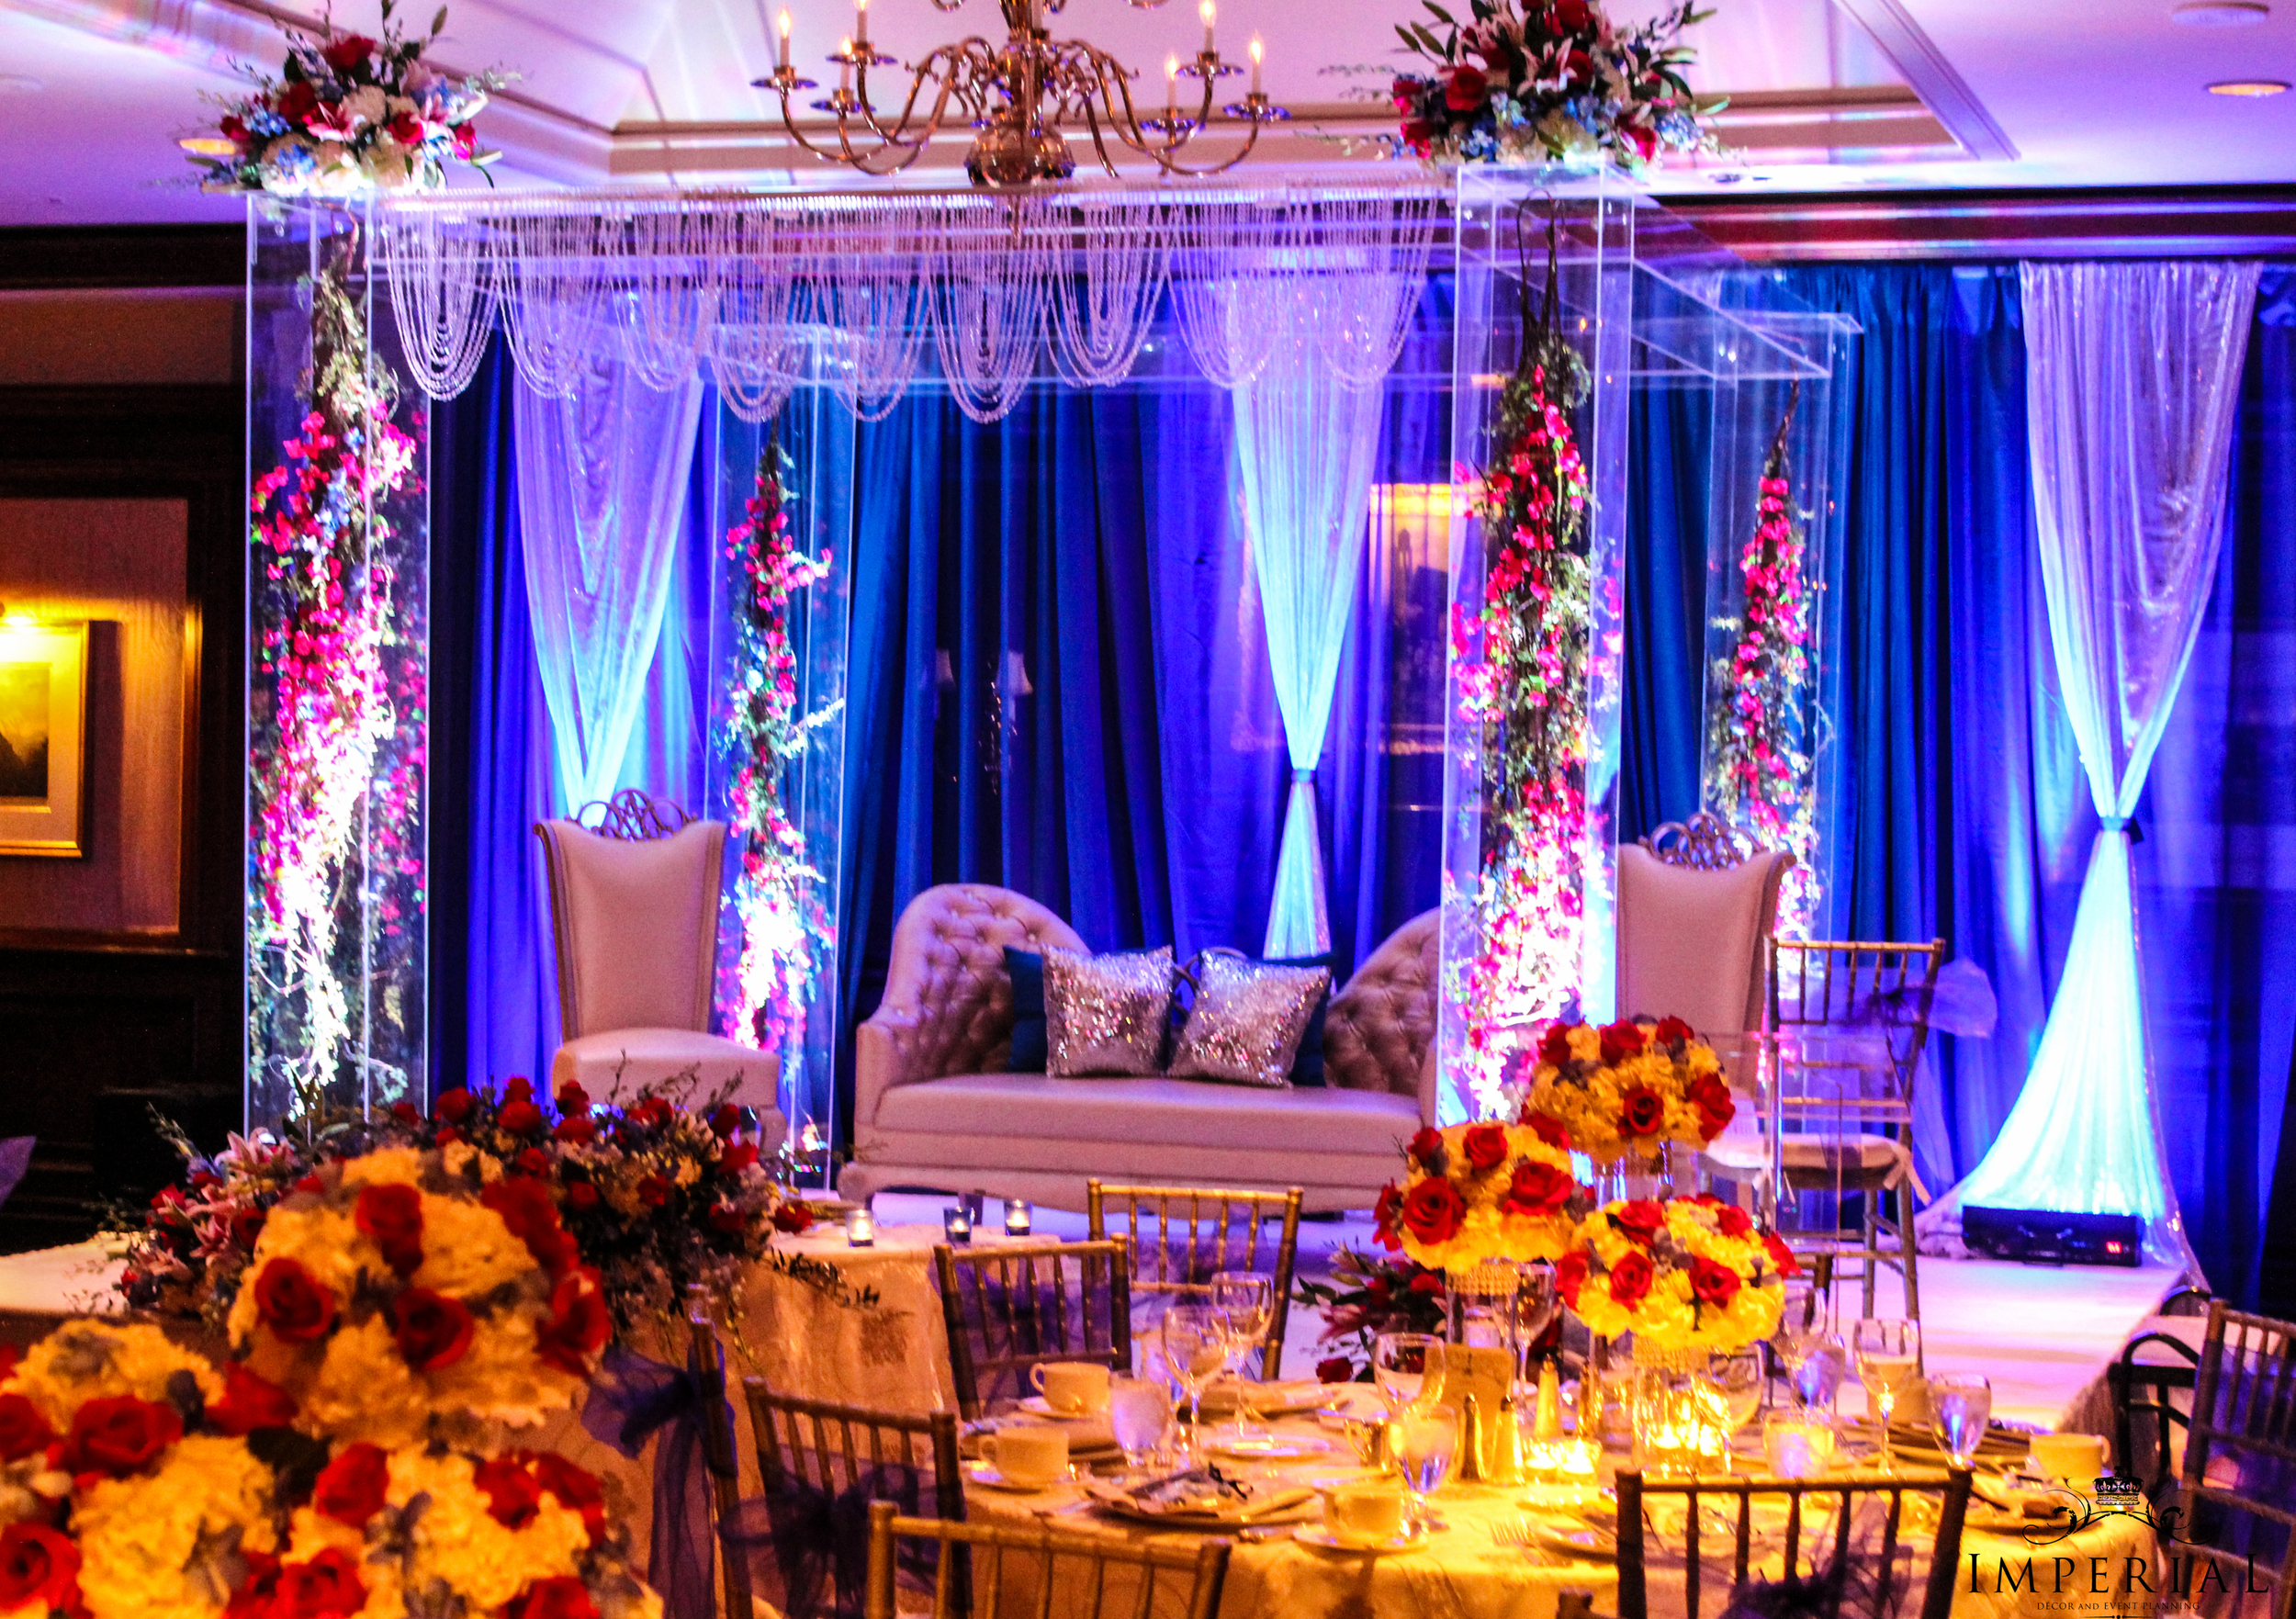 Imperial Decorations - Indian Wedding Floral Hall Stage Decorations.jpg.jpg